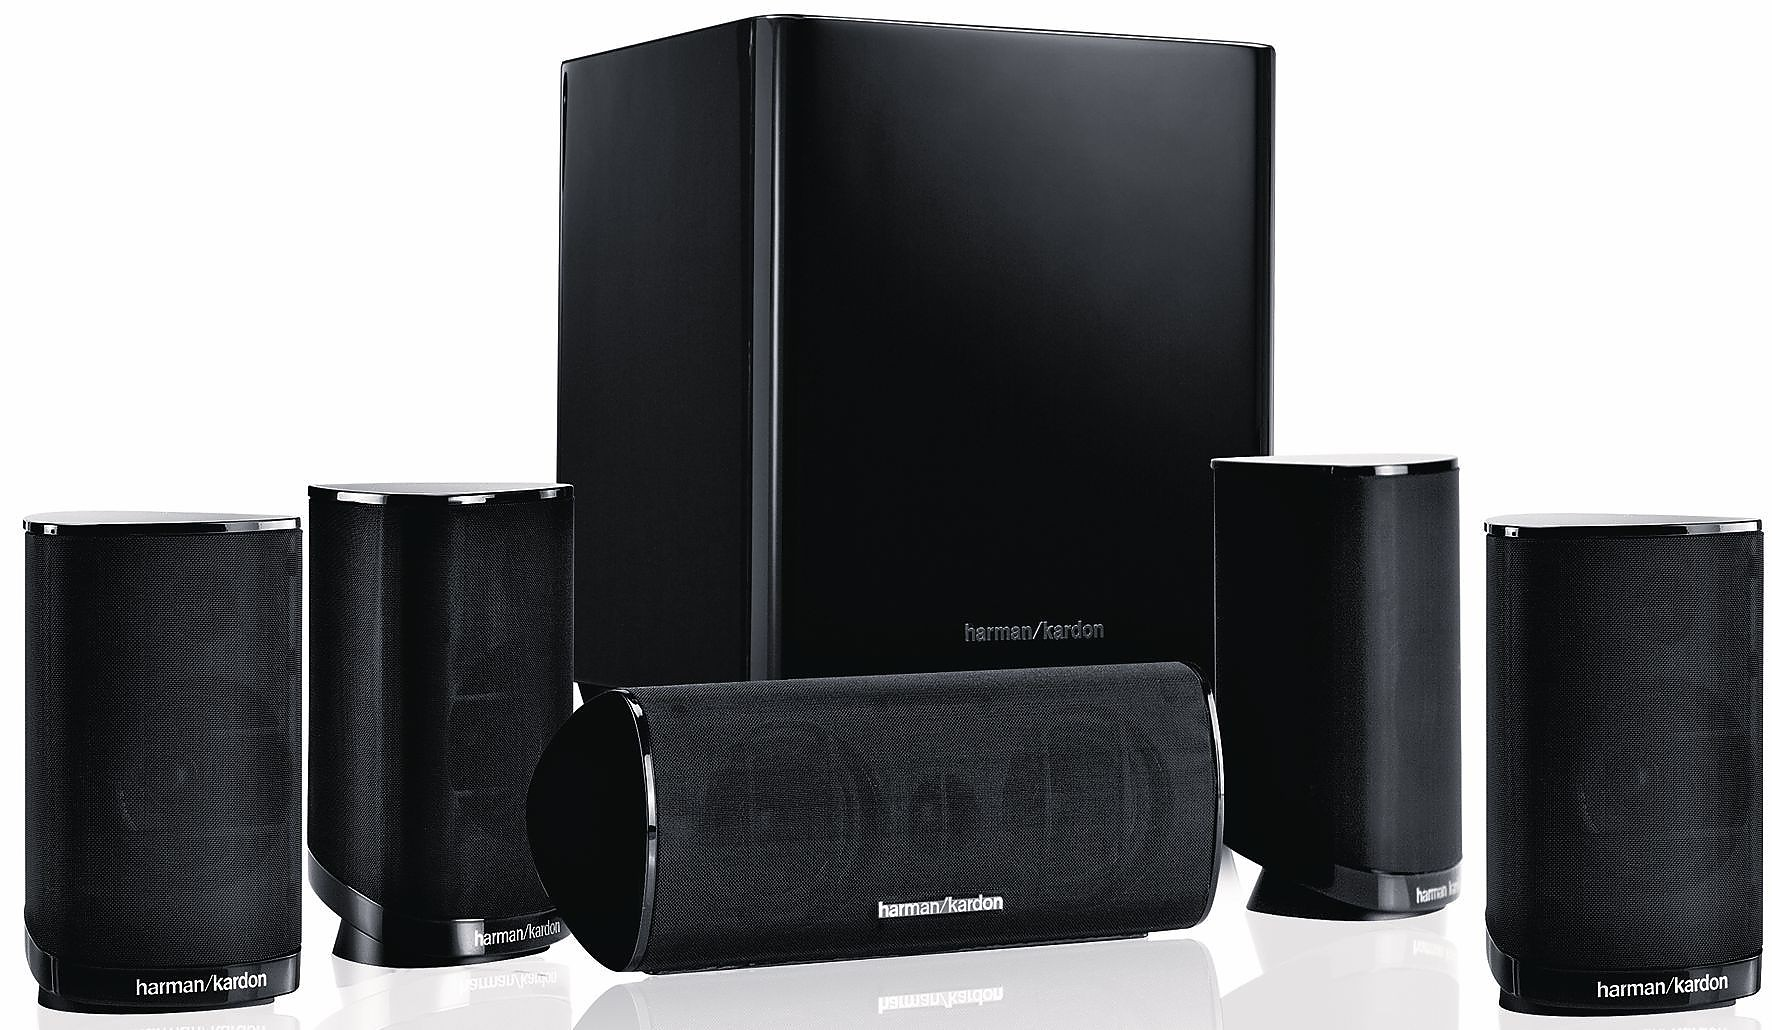 teamsix hkts 9 bq schwarz harman kardon heim lautsprecher. Black Bedroom Furniture Sets. Home Design Ideas